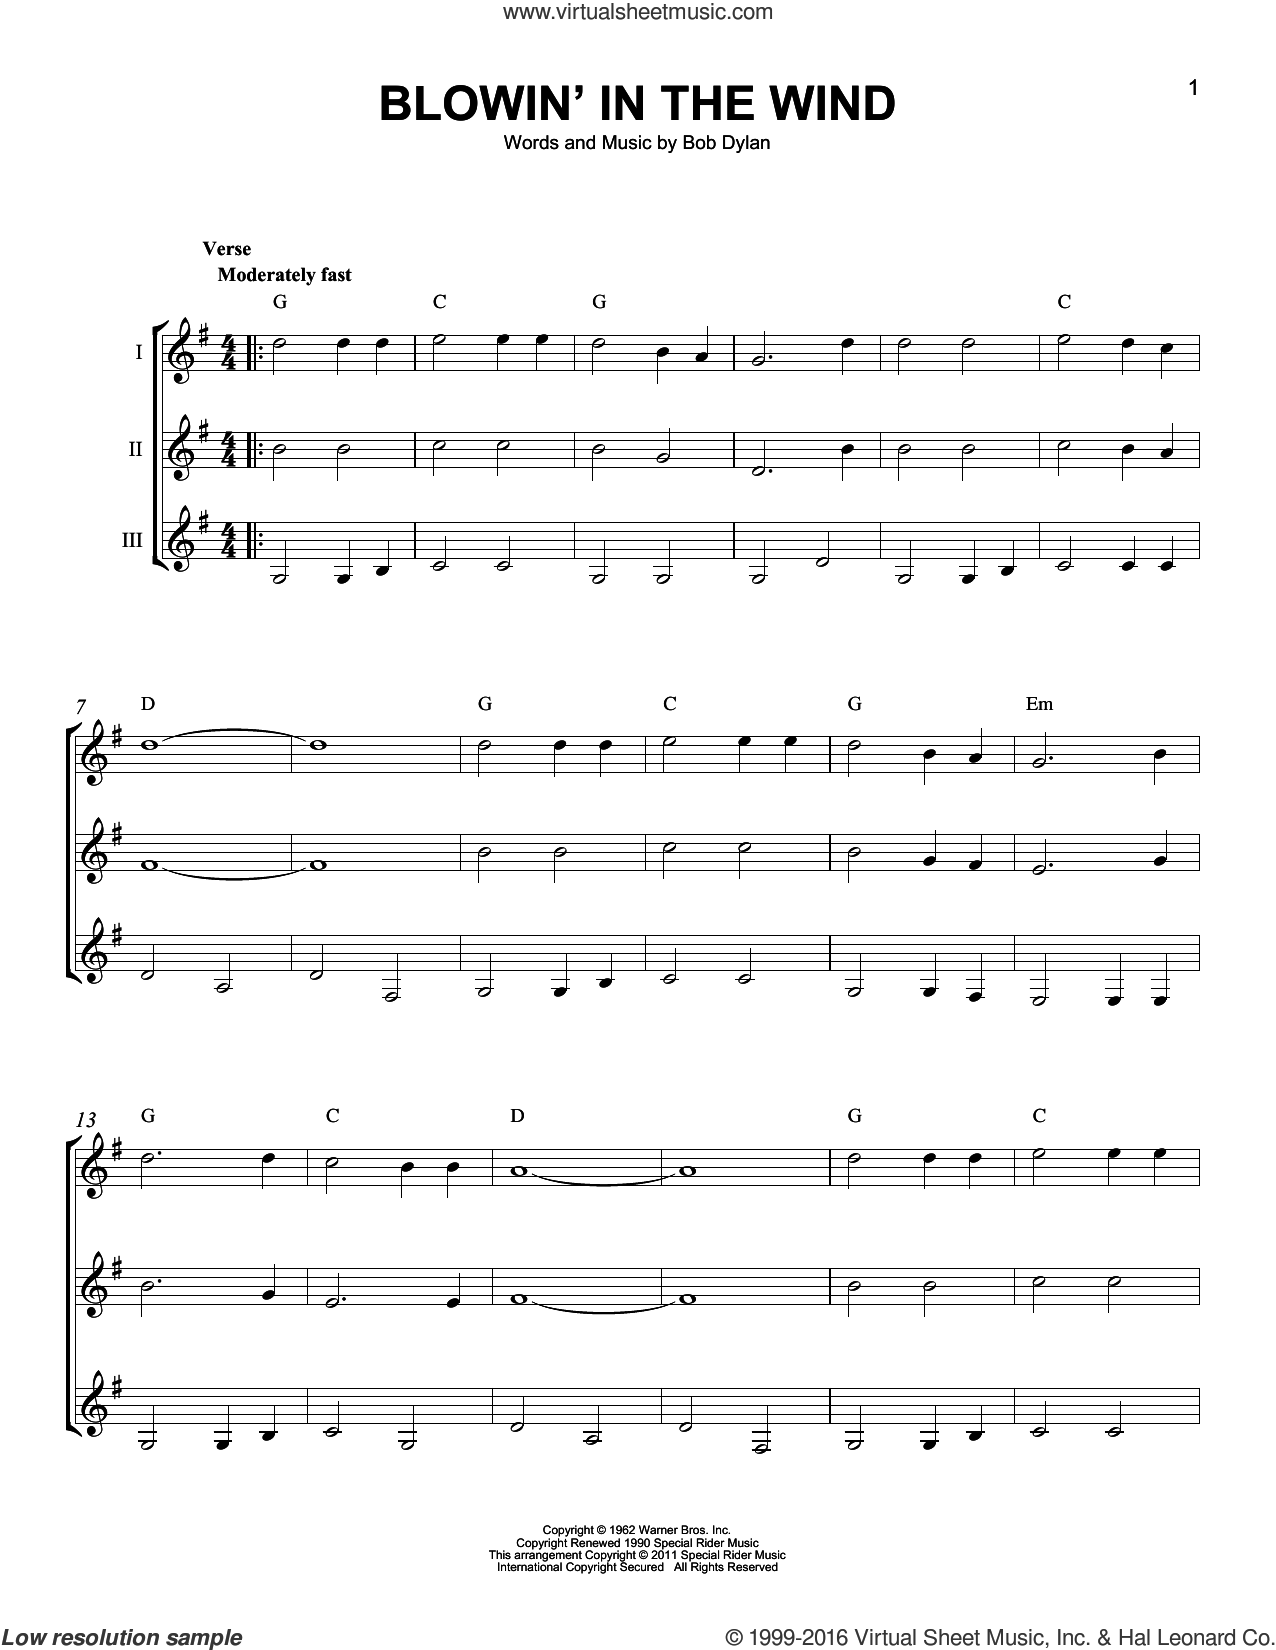 Blowin' In The Wind sheet music for guitar ensemble by Bob Dylan, Peter, Paul & Mary and Stevie Wonder. Score Image Preview.